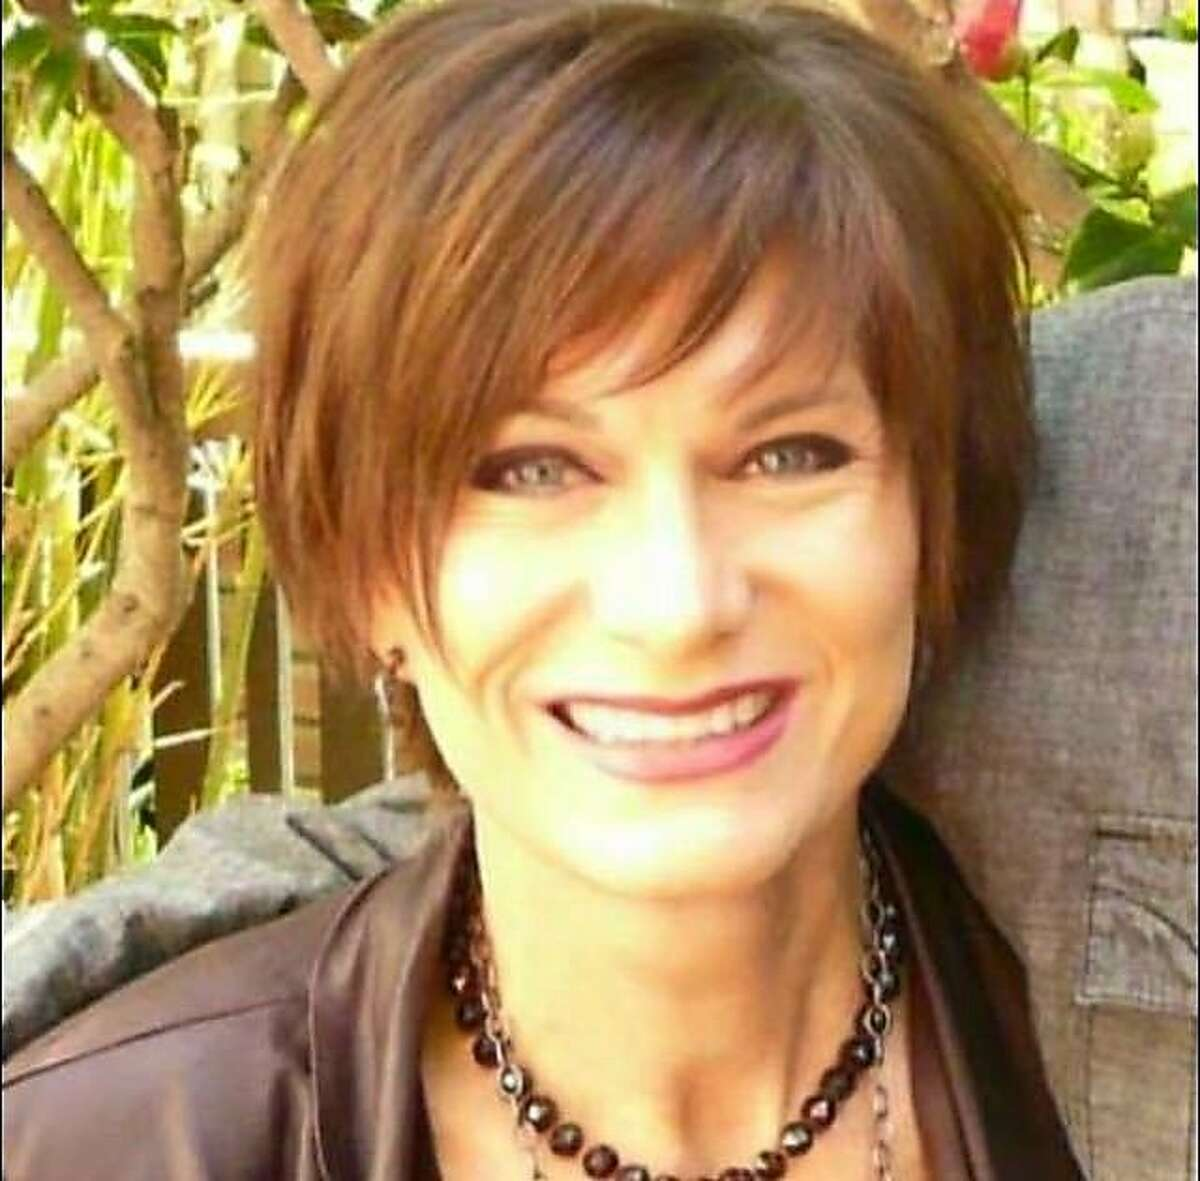 This photo of missing person Shelly Carmichael Titchener was released by Brisbane police.